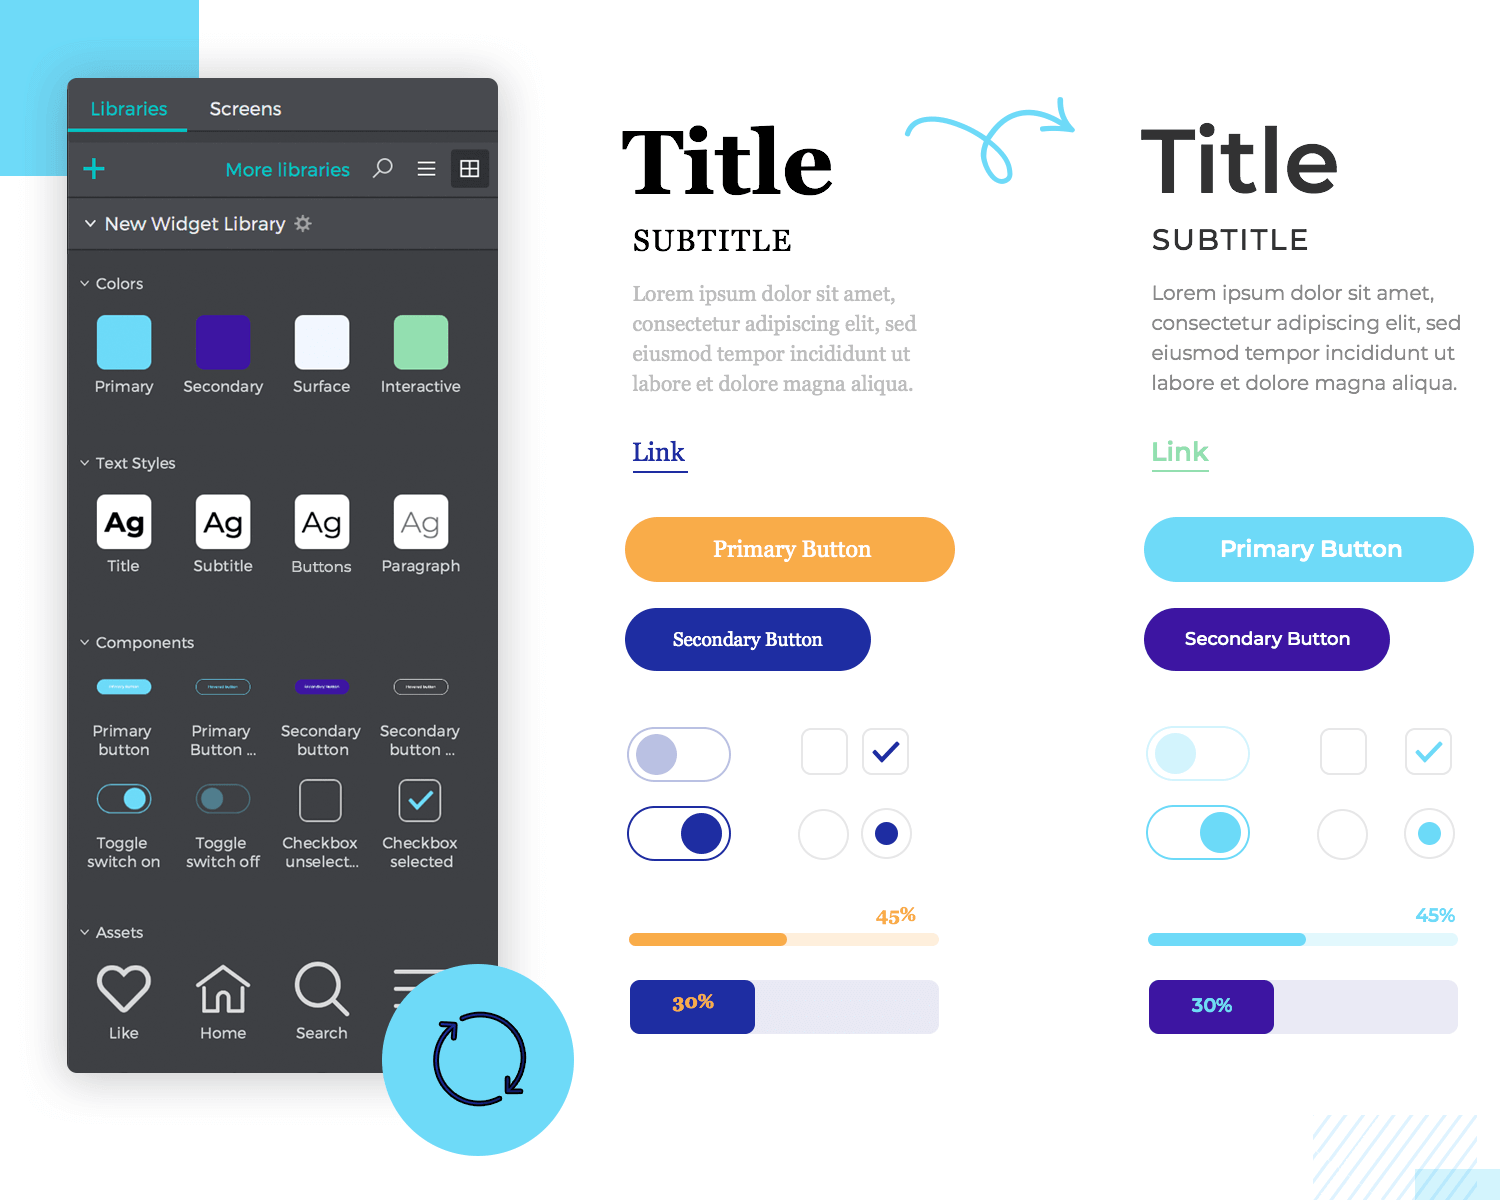 new and improved libraries that can be design systems